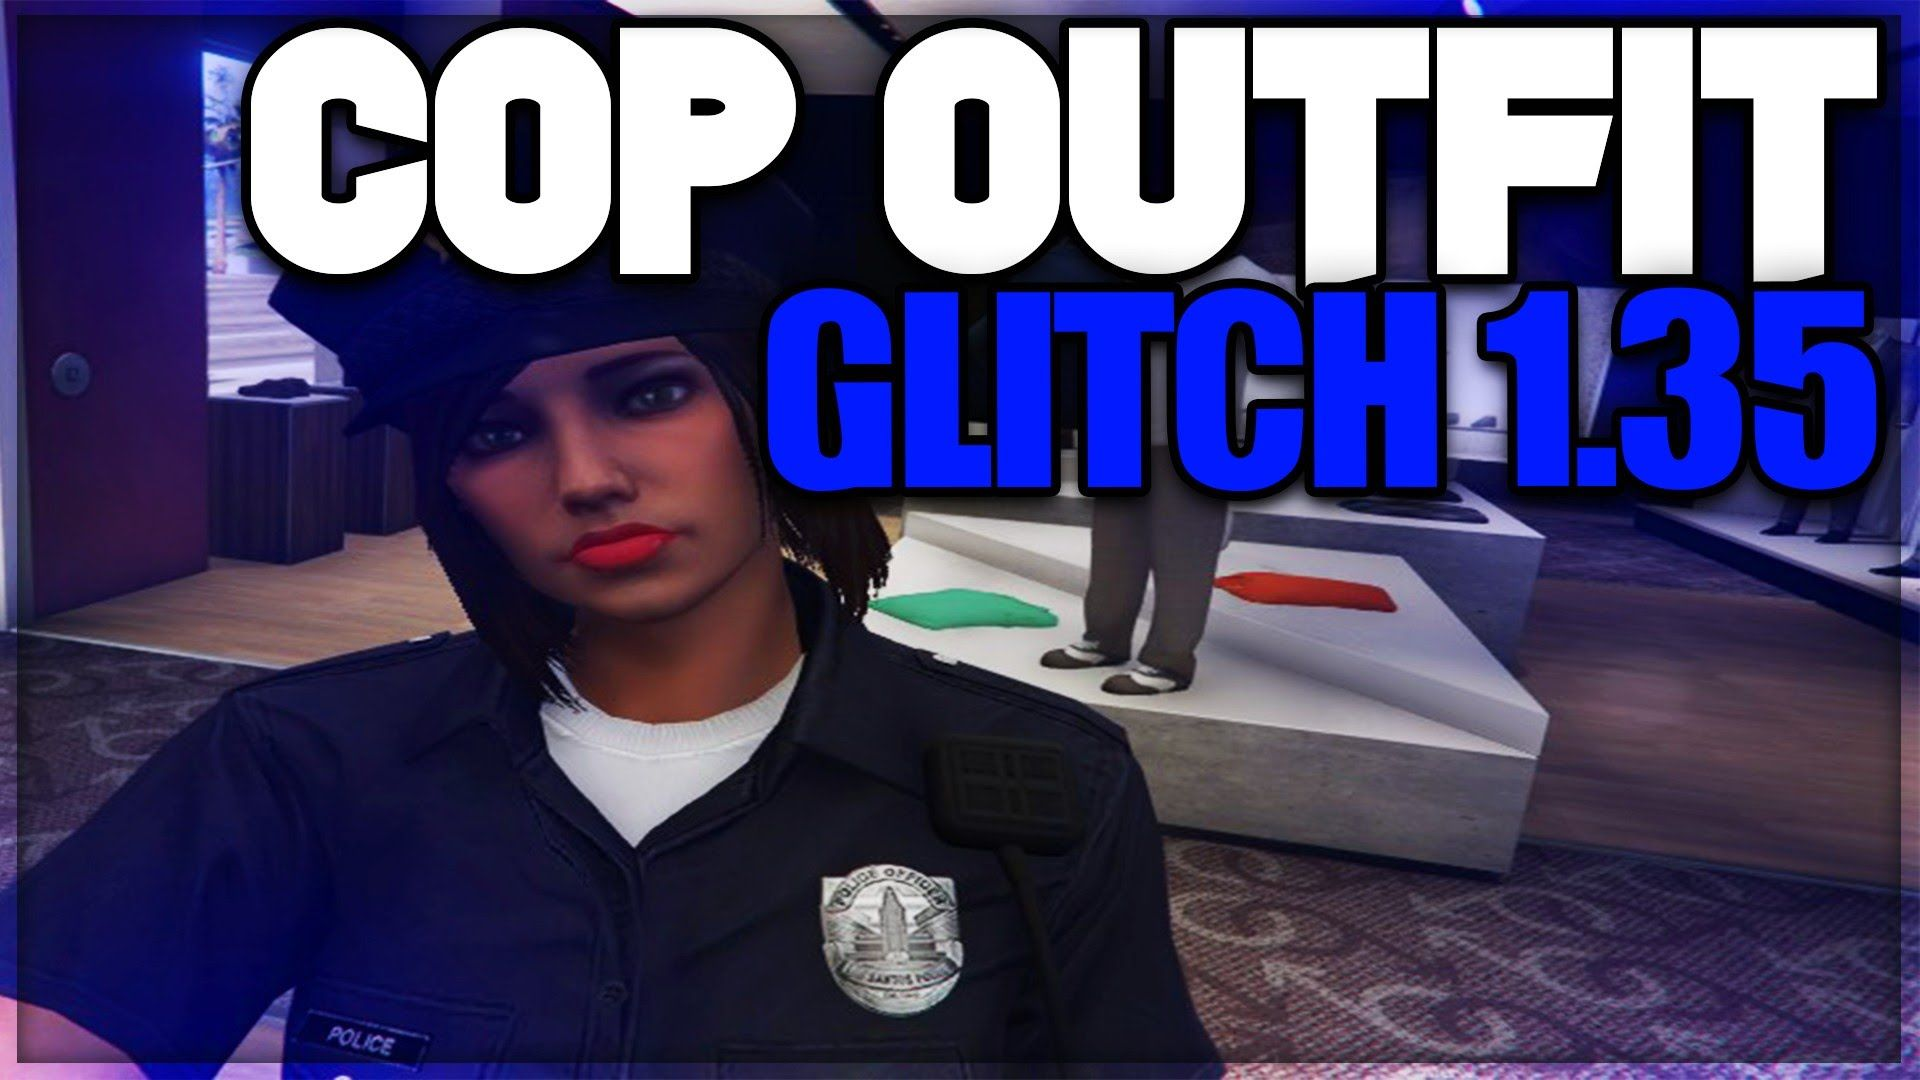 GTA 5 Online: How To Get The Police Uniform Glitch 1 35